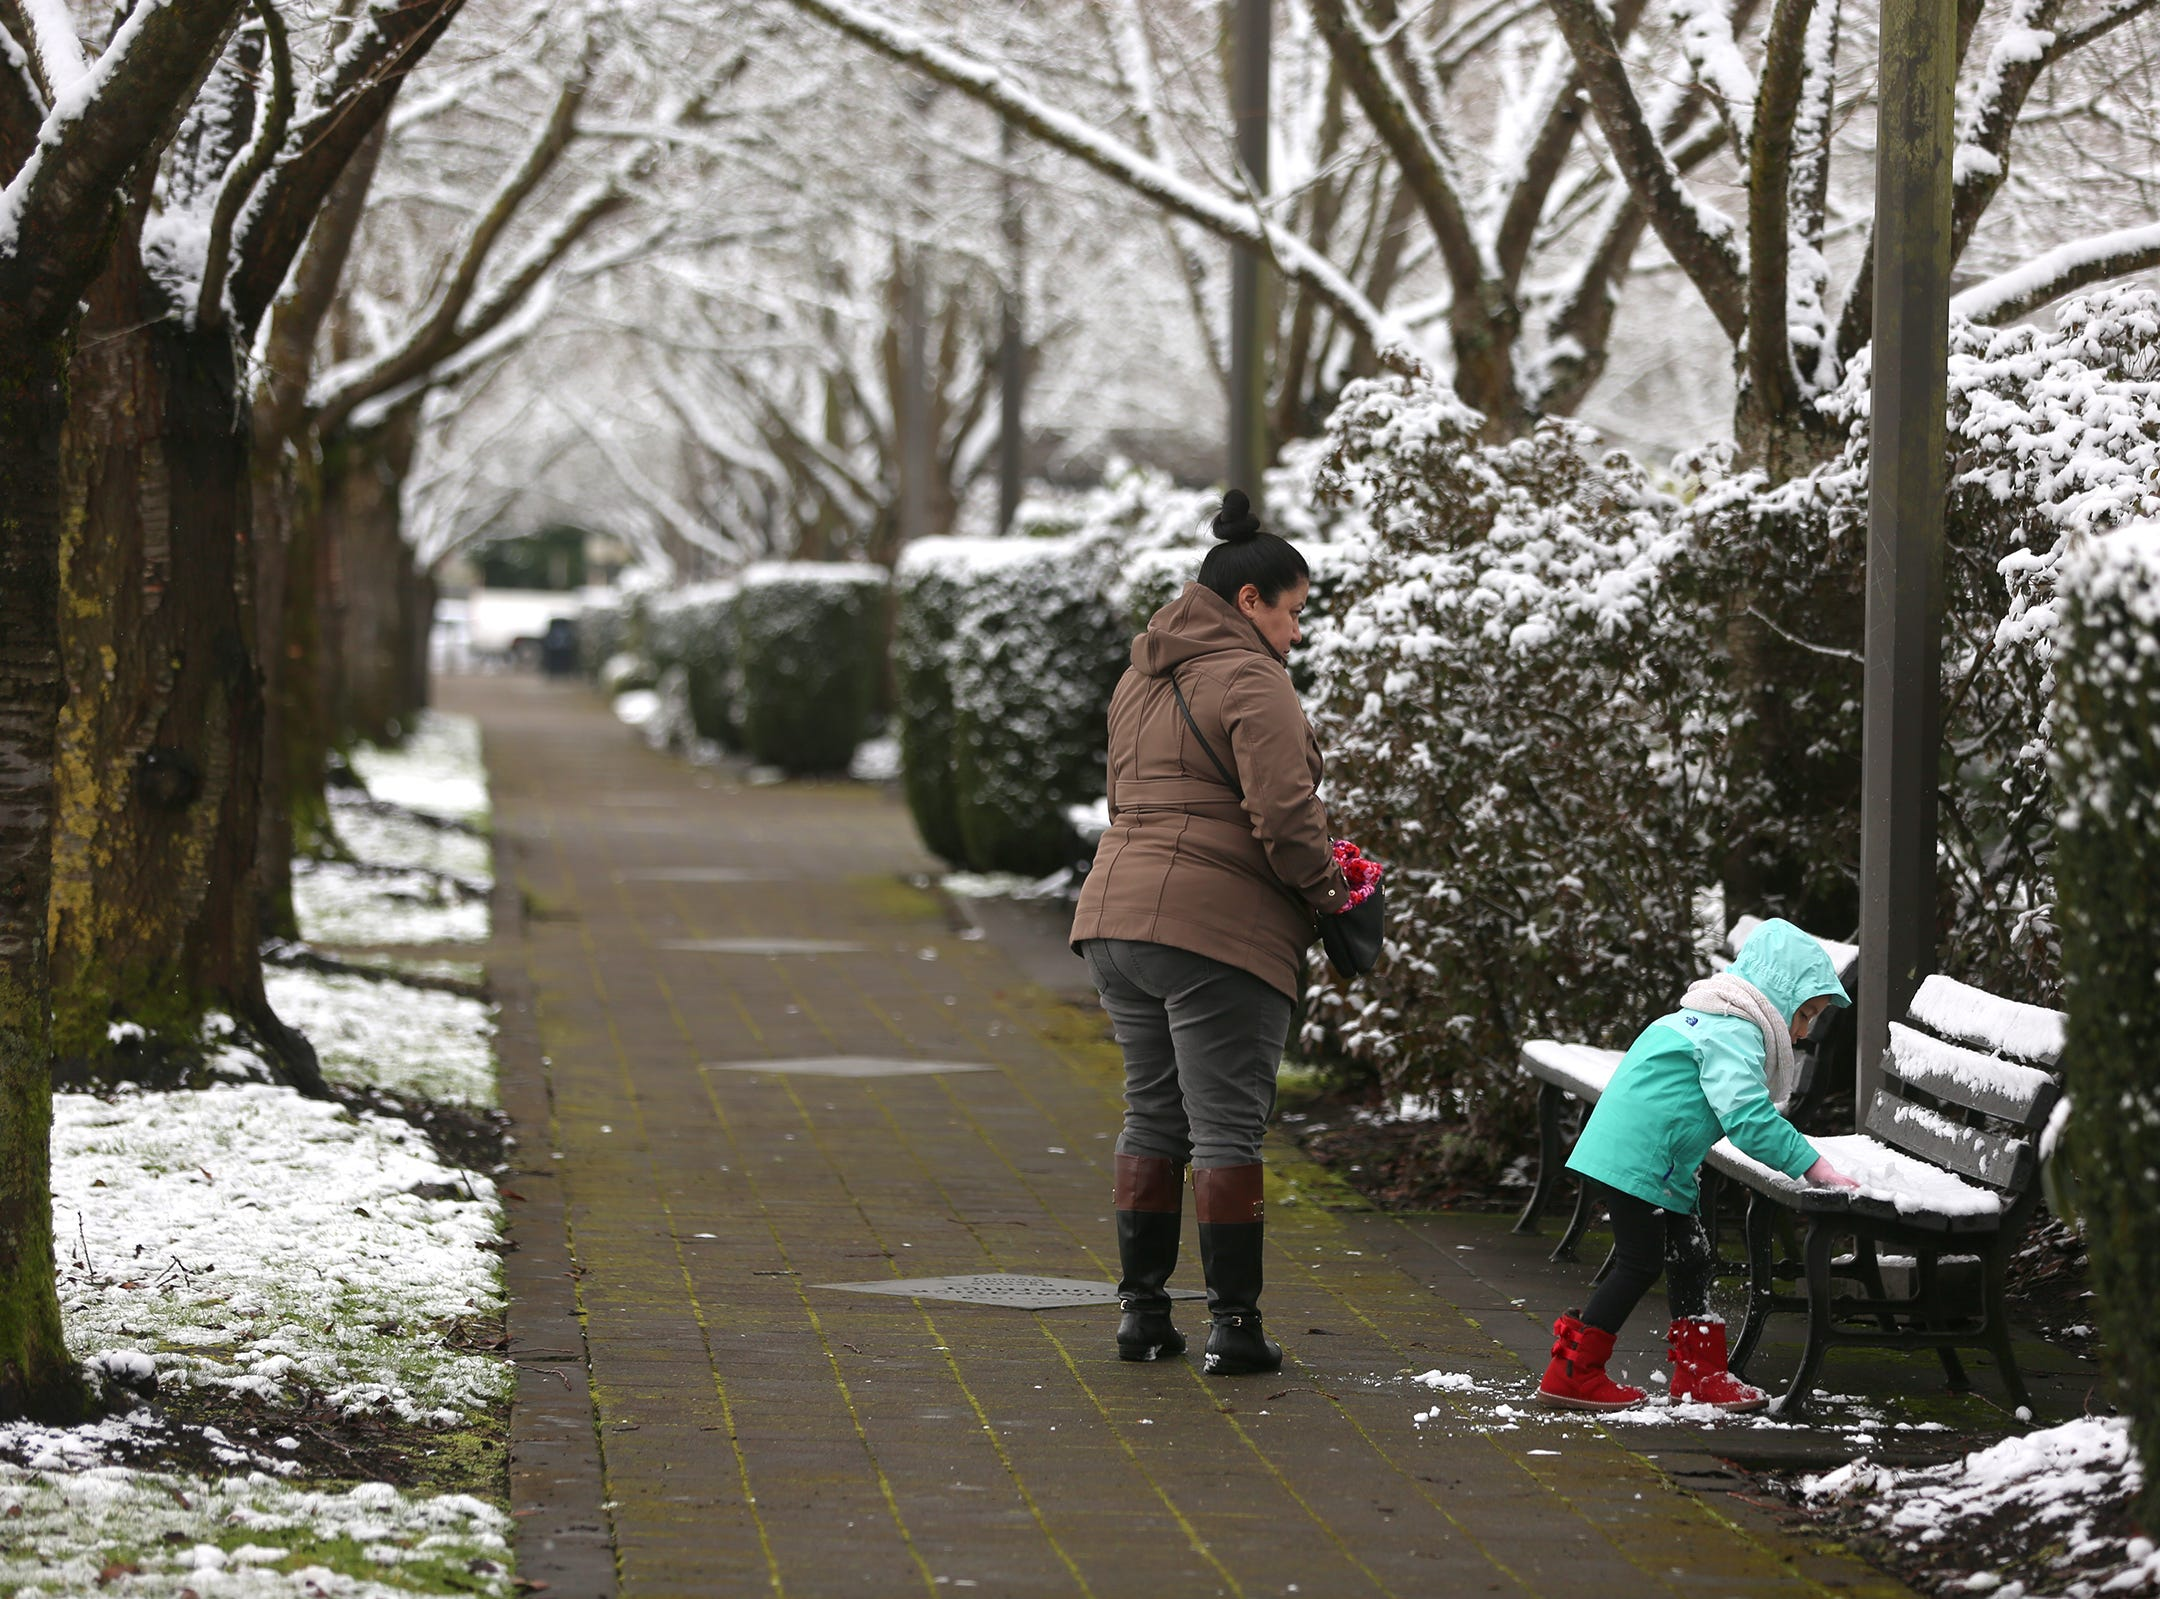 Claudia Rodriguez-Juarez and her daughter Aviela Juarez,3, play in the snow outside the Oregon State Capitol in Salem on Tuesday, Feb. 5, 2019.